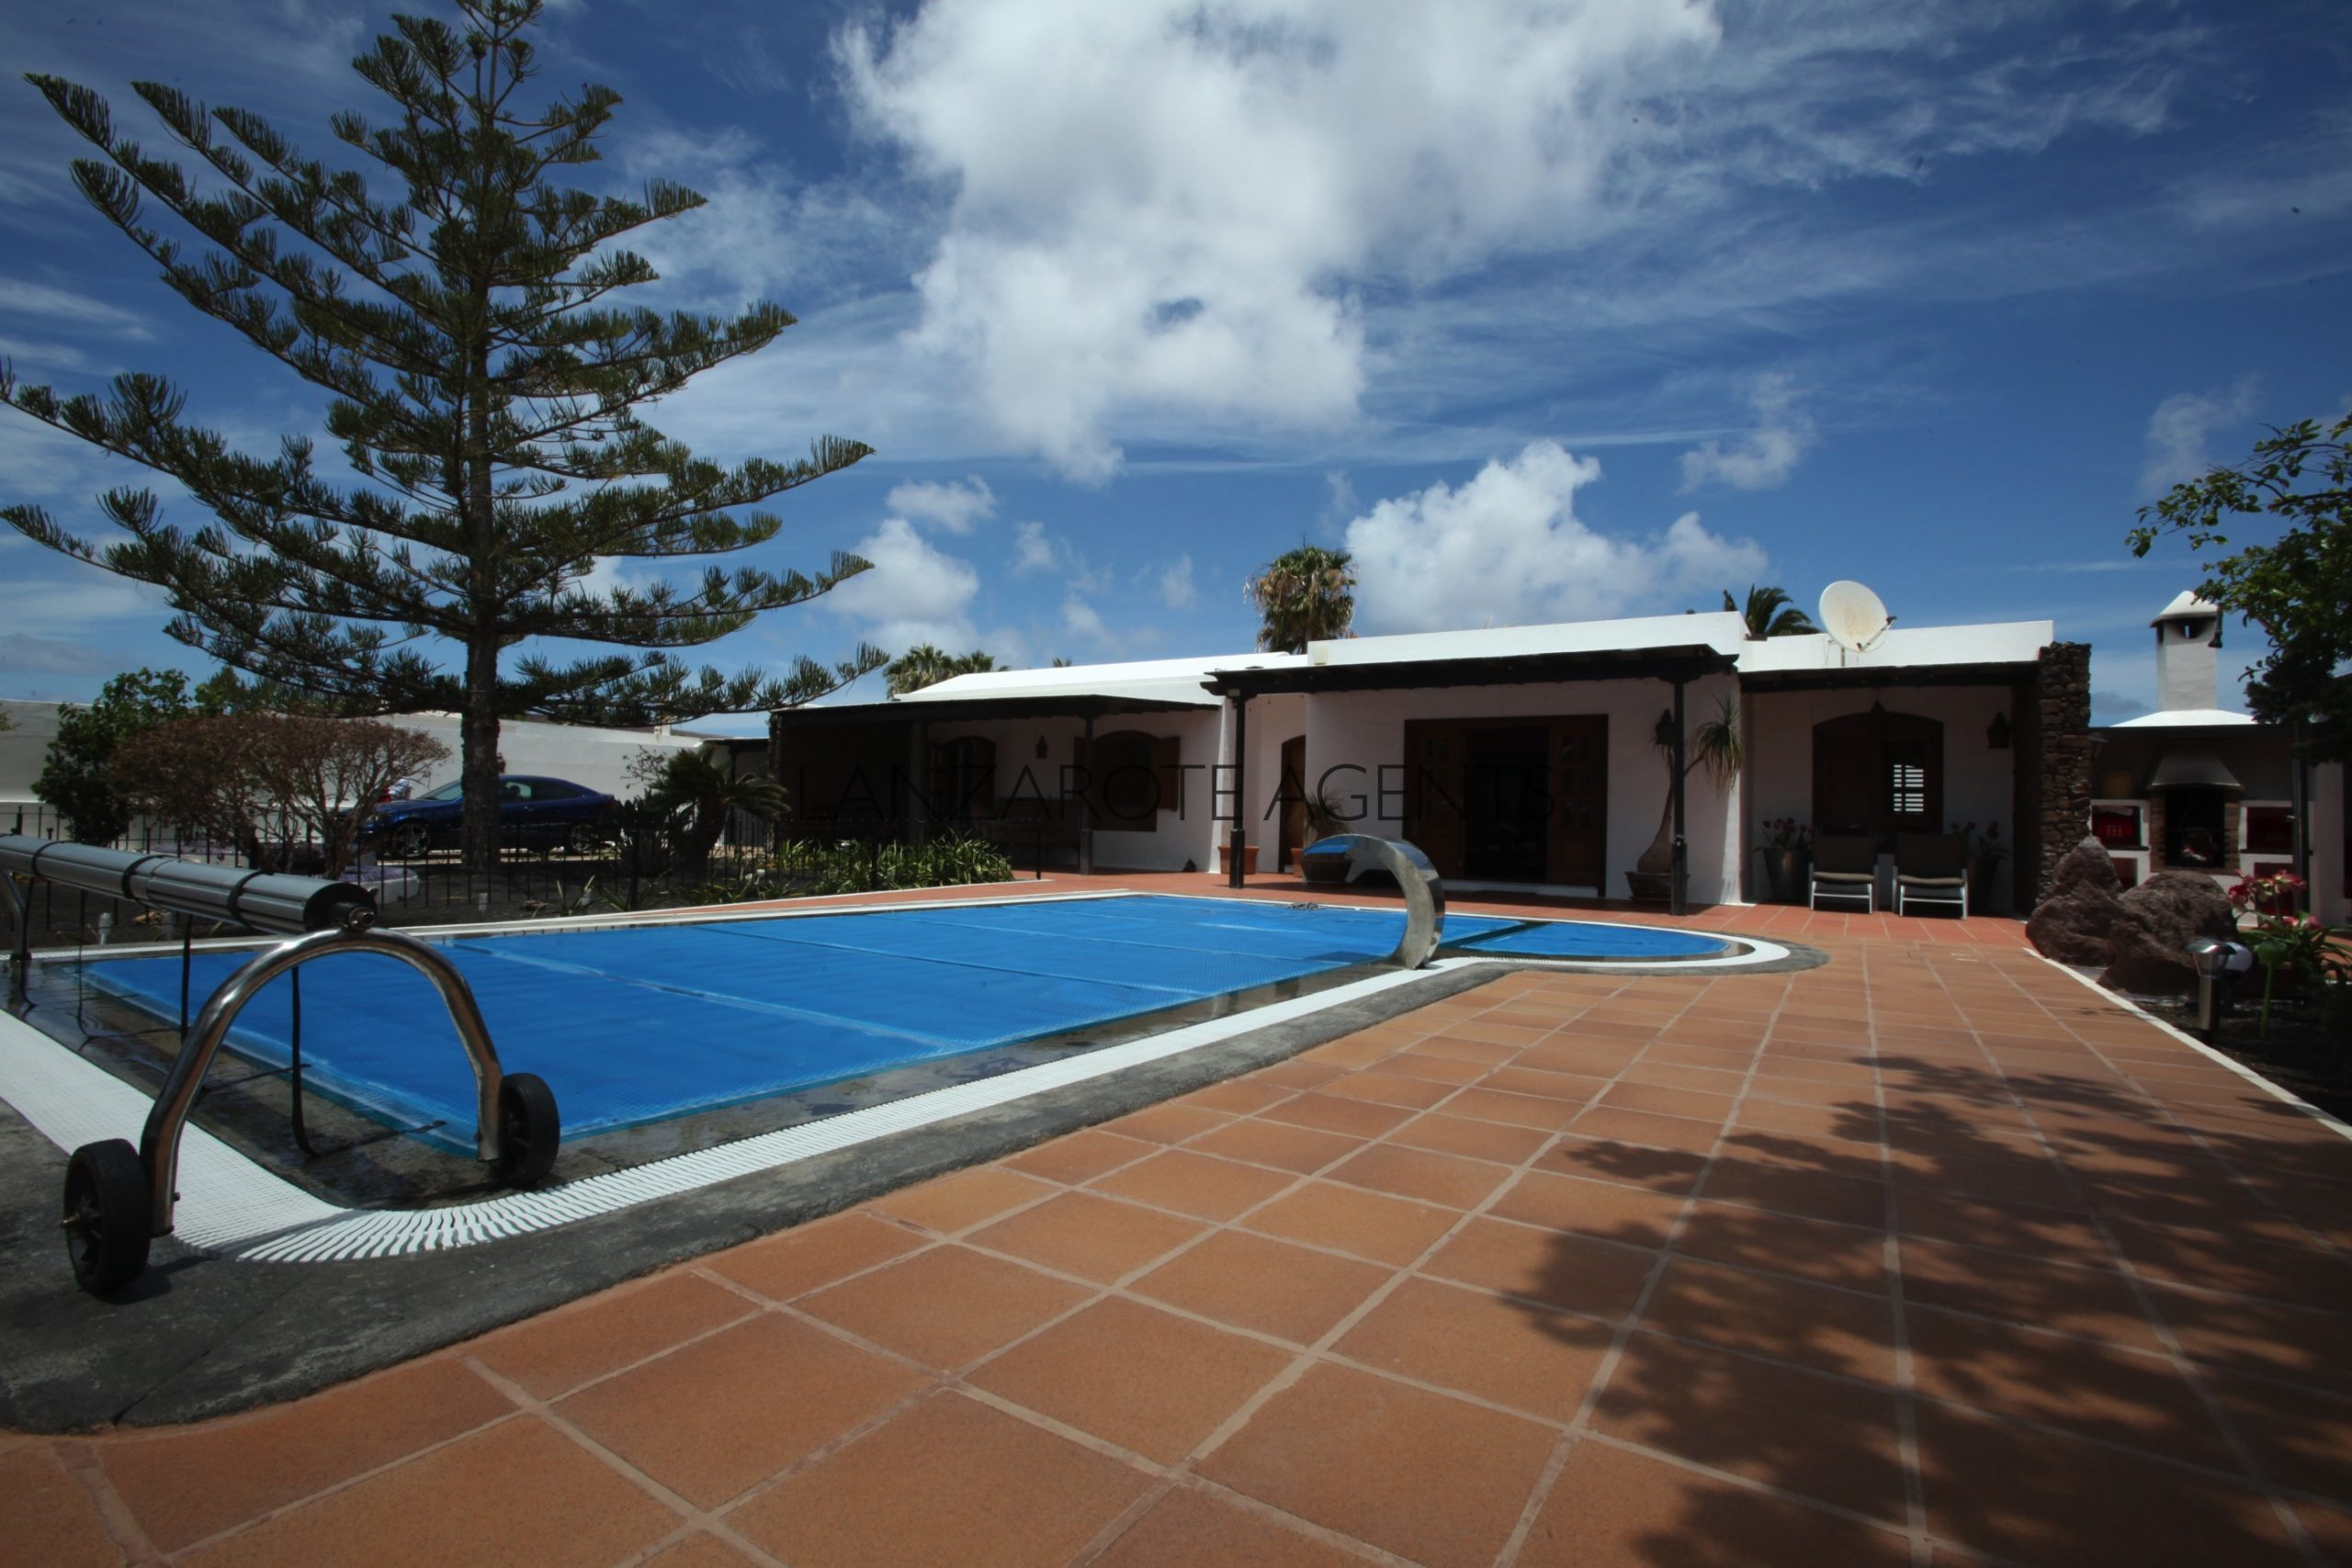 FABULOUS LARGE DETACHED FAMILY HOME IN LOS CALAMARES OF PLAYA BLANCA WITH TWO INDEPENDENT APARTMENTS!!